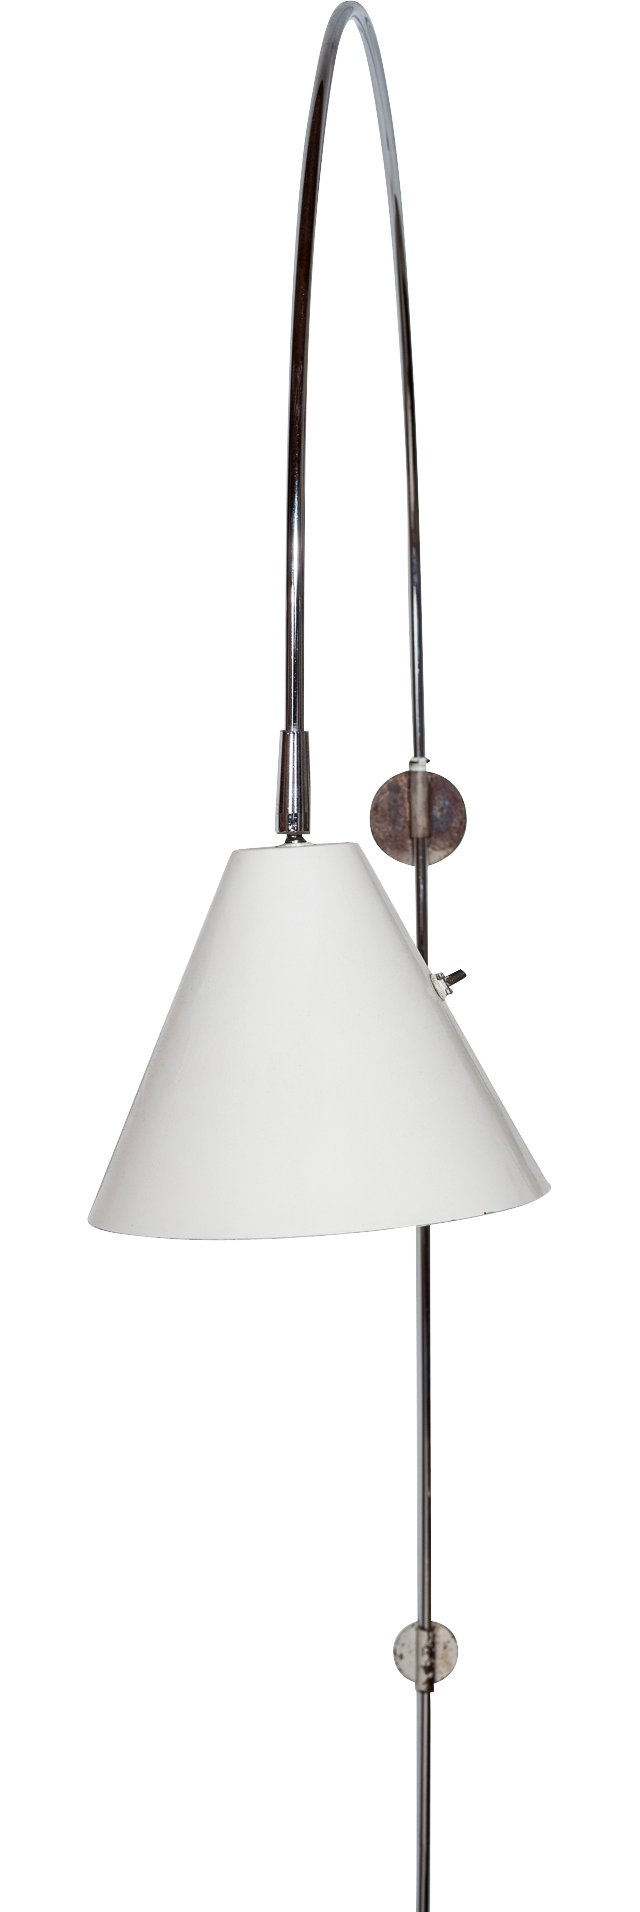 Italian Articulated Wall Mount Lamp